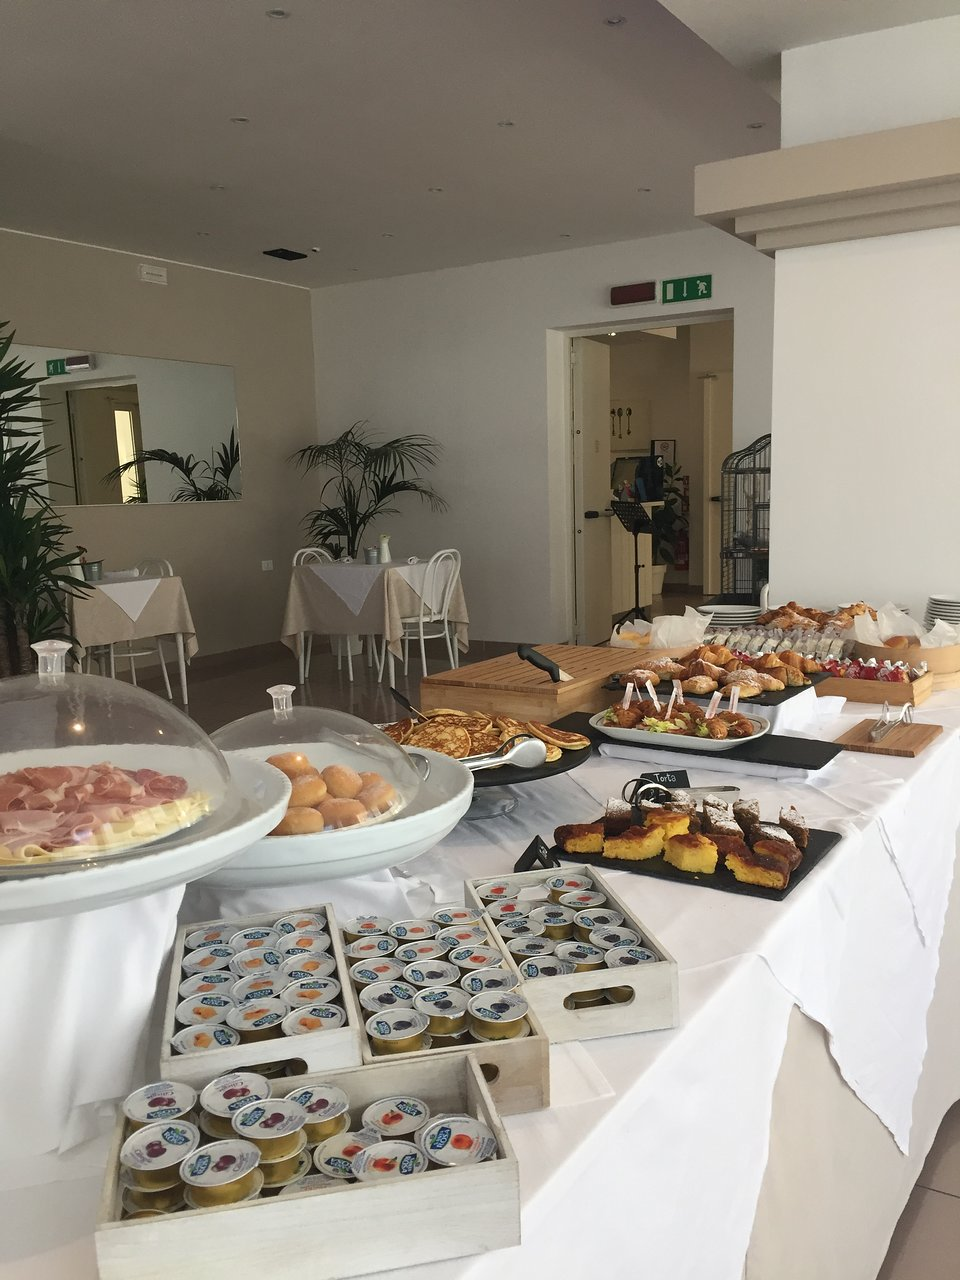 Al Caminetto Milano Marittima Hotel Bruna 101 141 Prices Reviews Milano Marittima